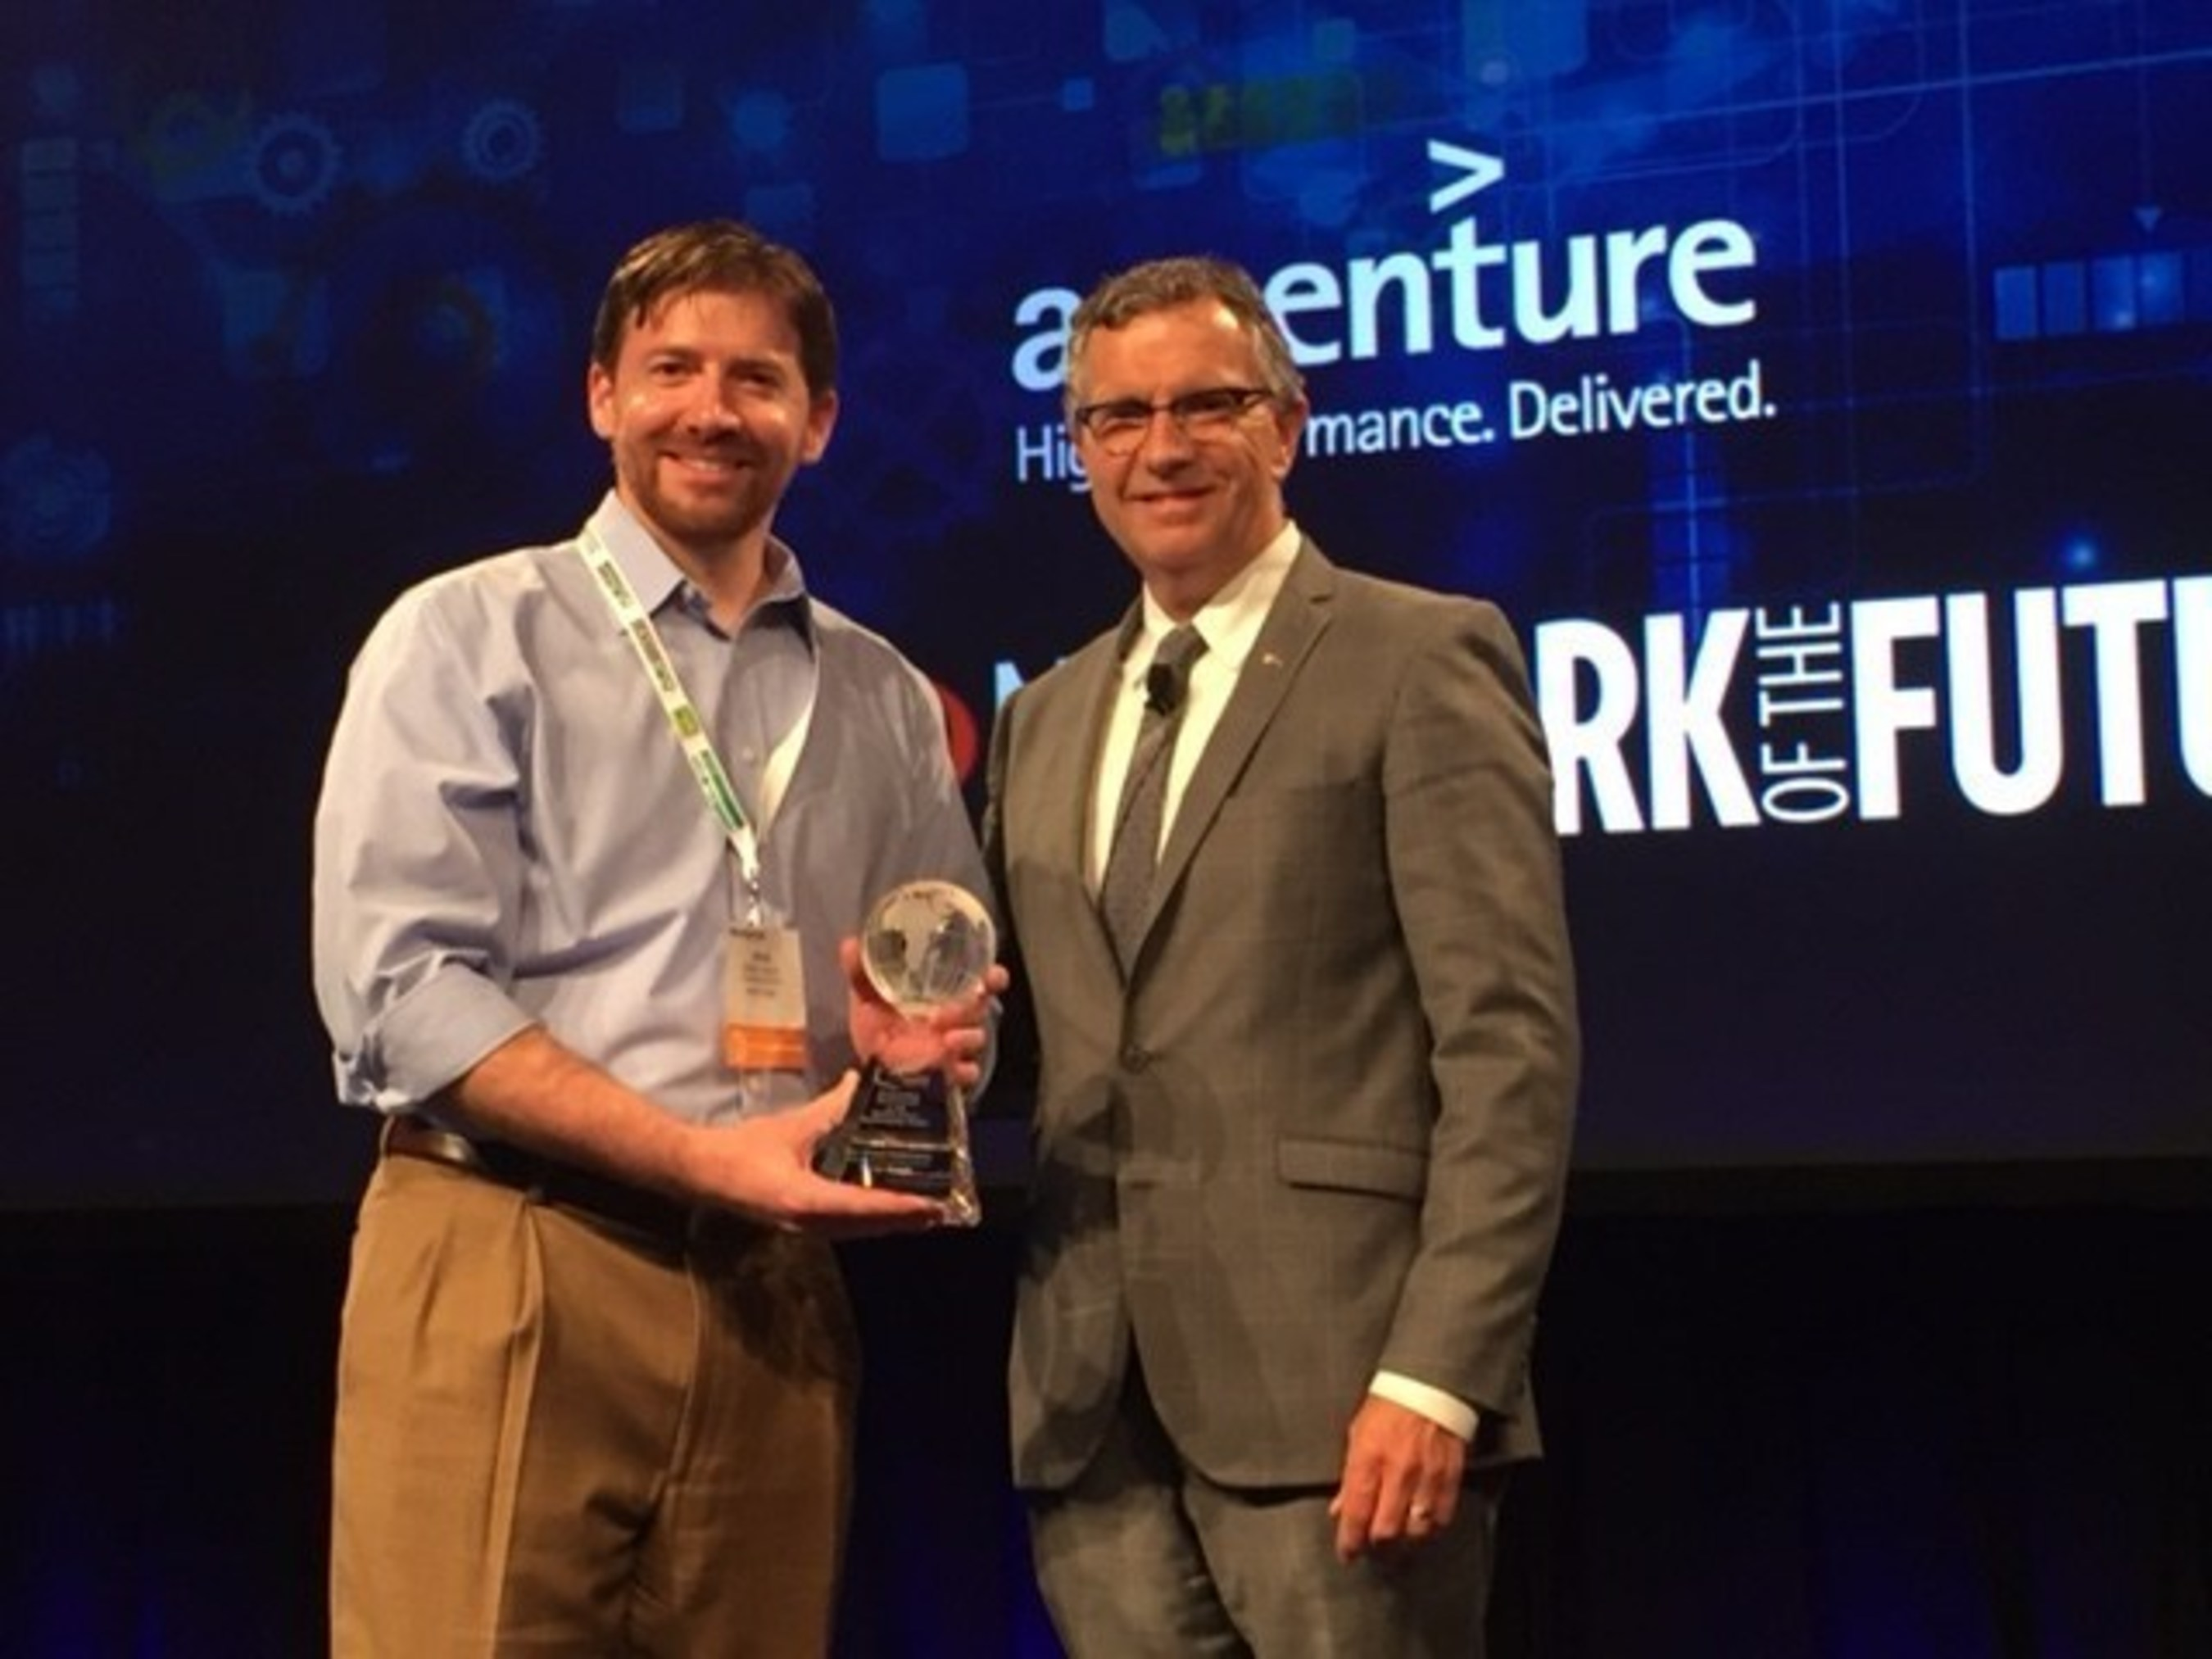 Sector Supply COO, Shiloh Coleman, being presented the 2016 Global Sustainability Award for Best Overall Performance by QuEST Forum CEO, Fraser Pajak